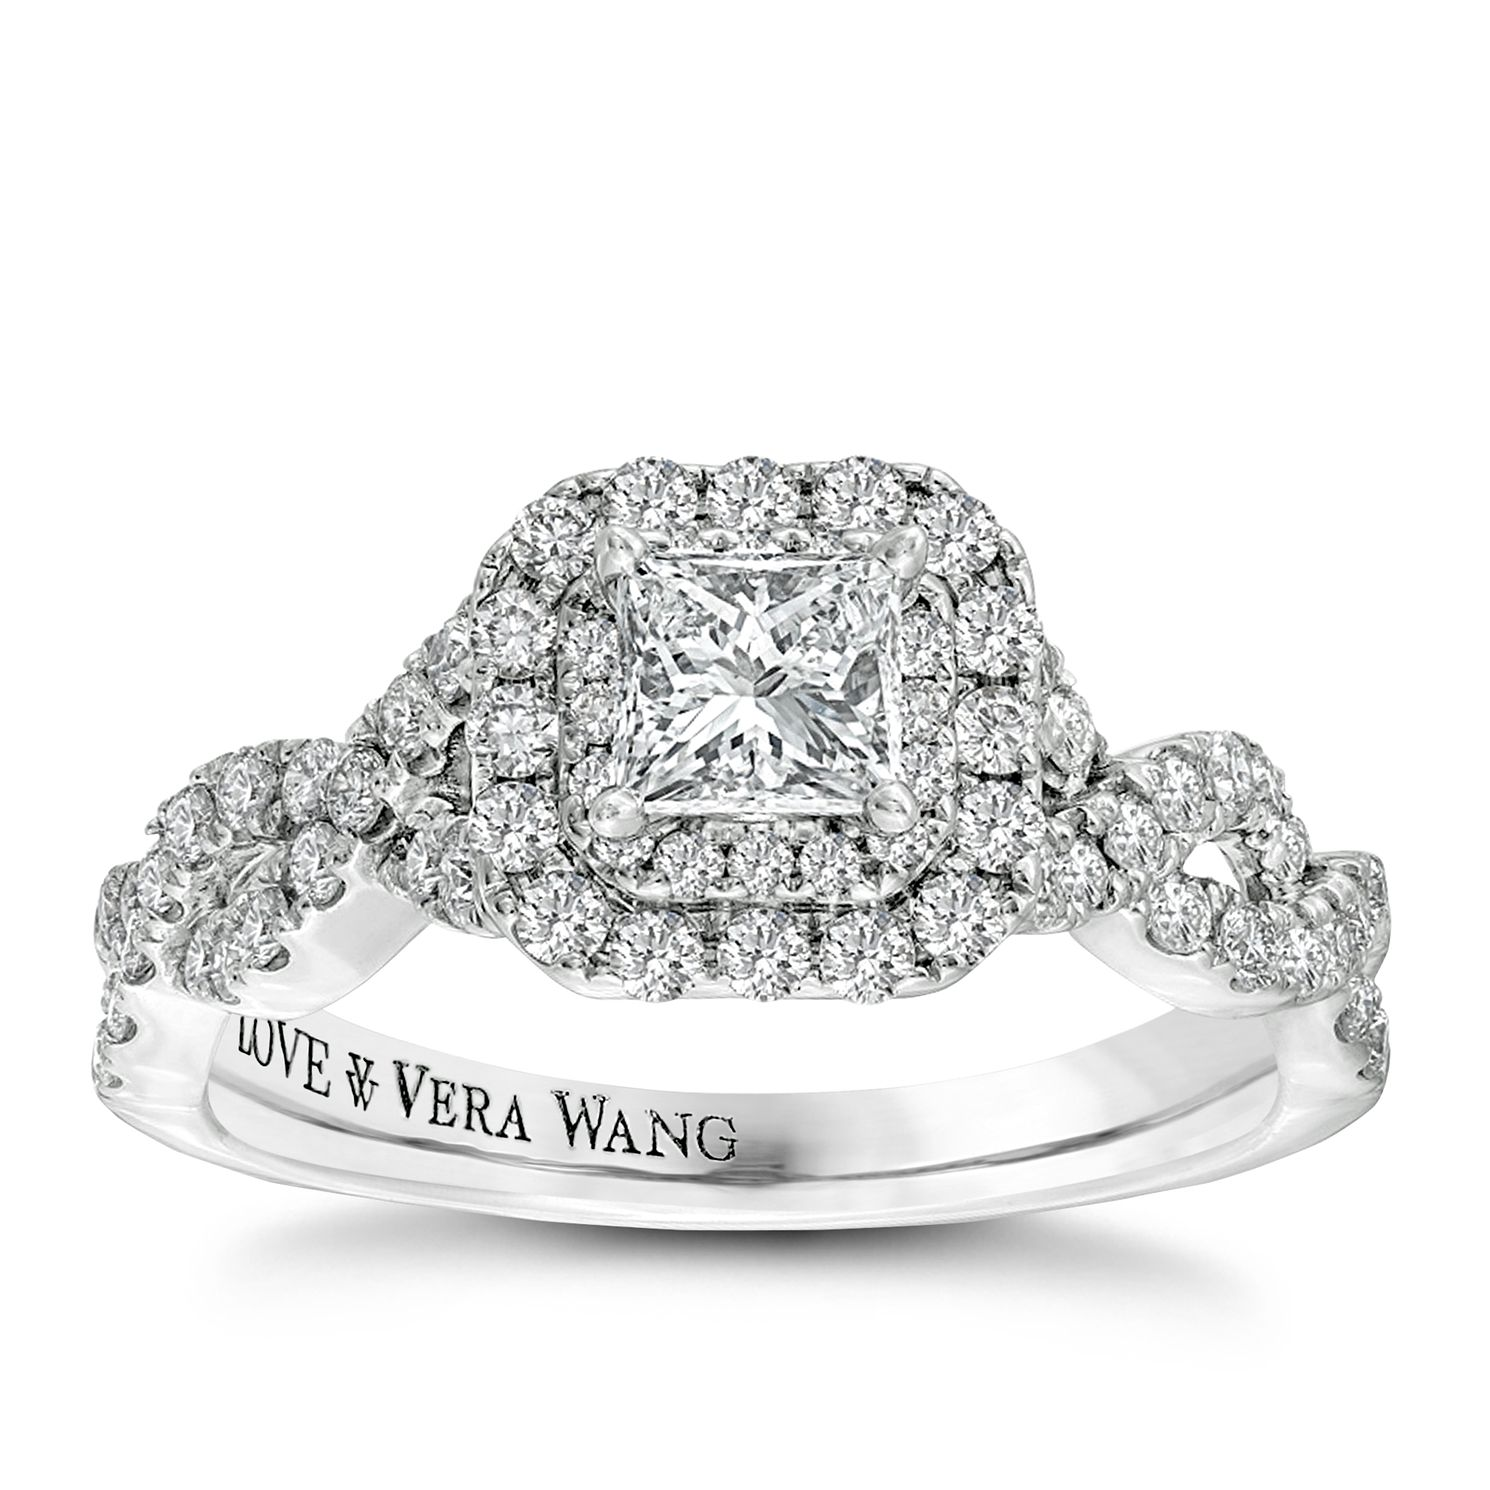 wang affordable styles unique rings beautiful best engagement vera image love